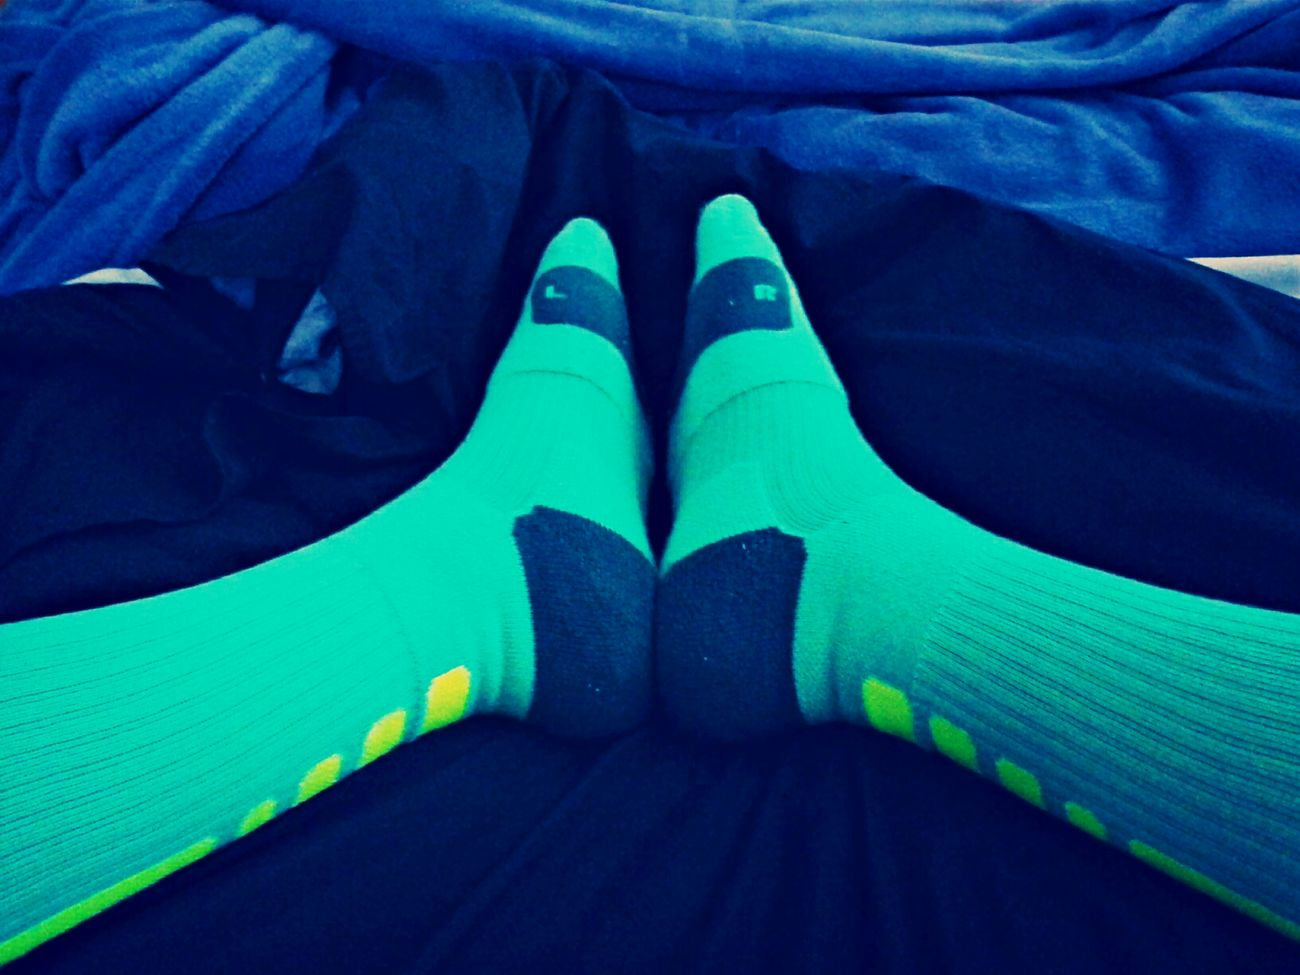 Chilling Nike Nike Elite Socks